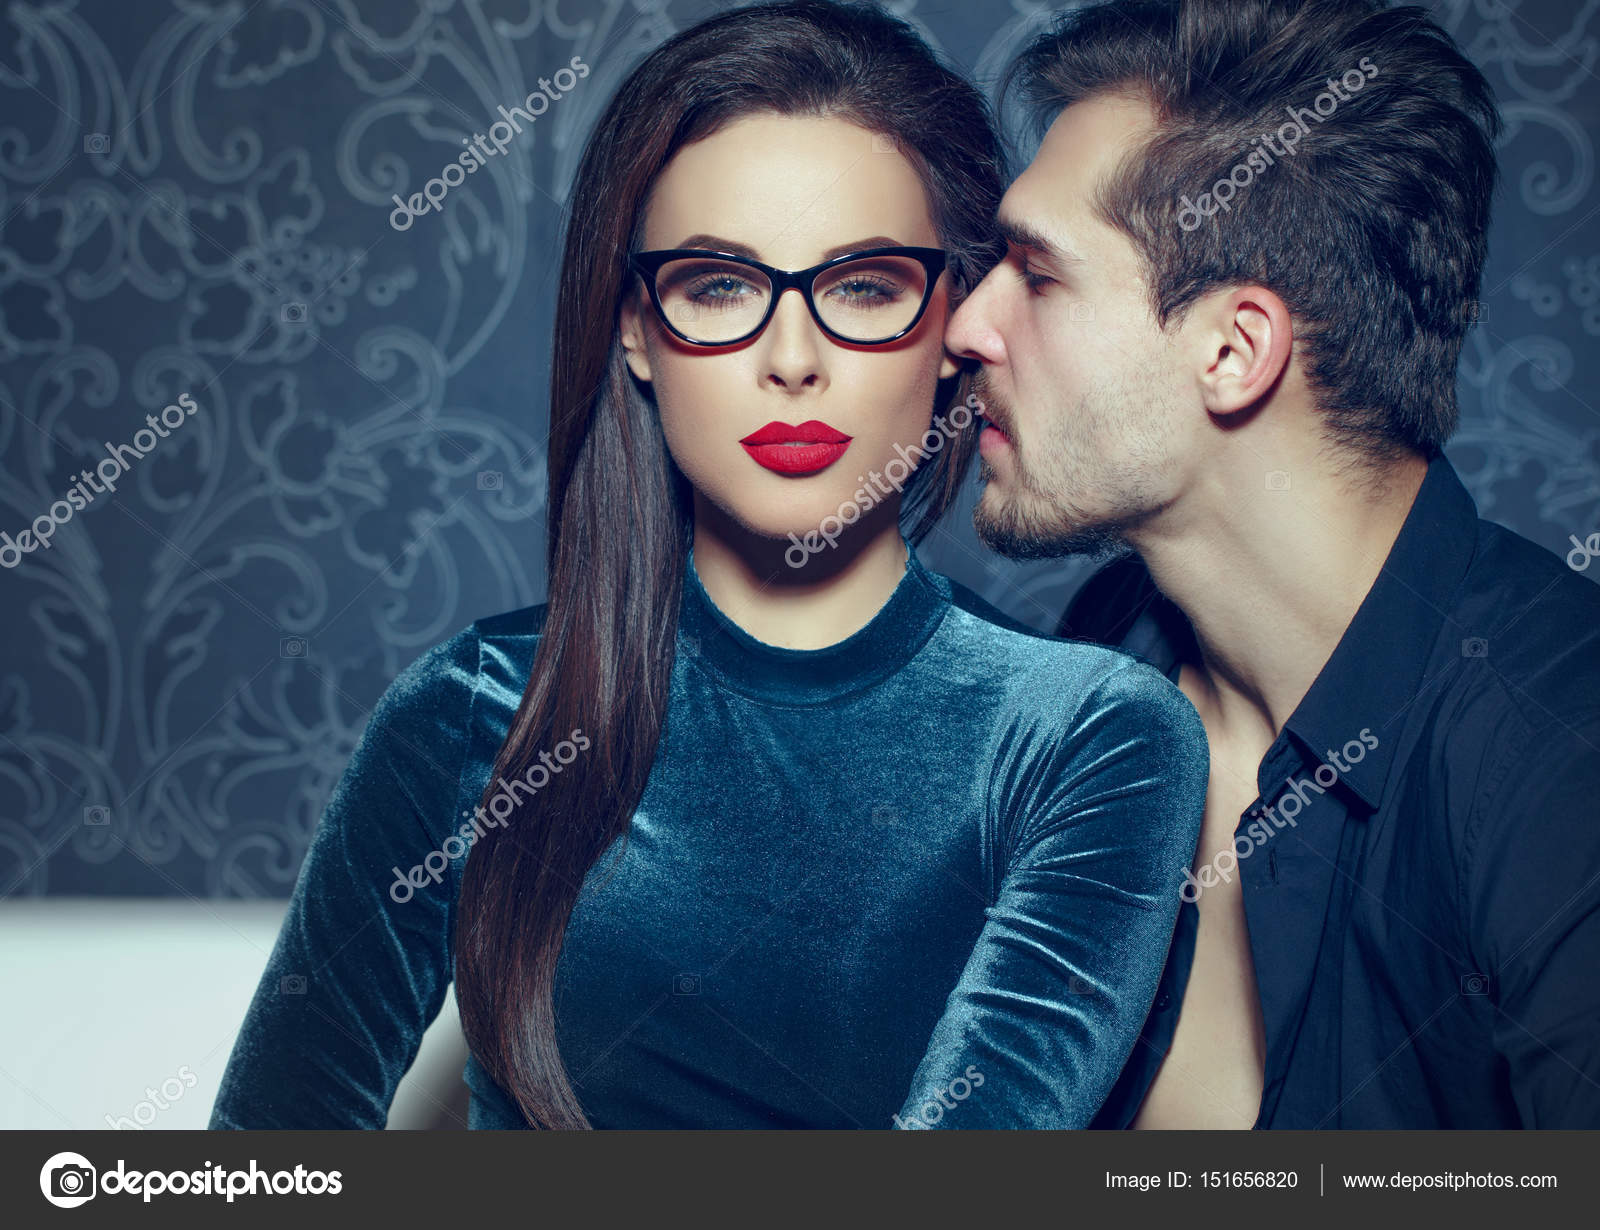 new 100 free dating site in europe